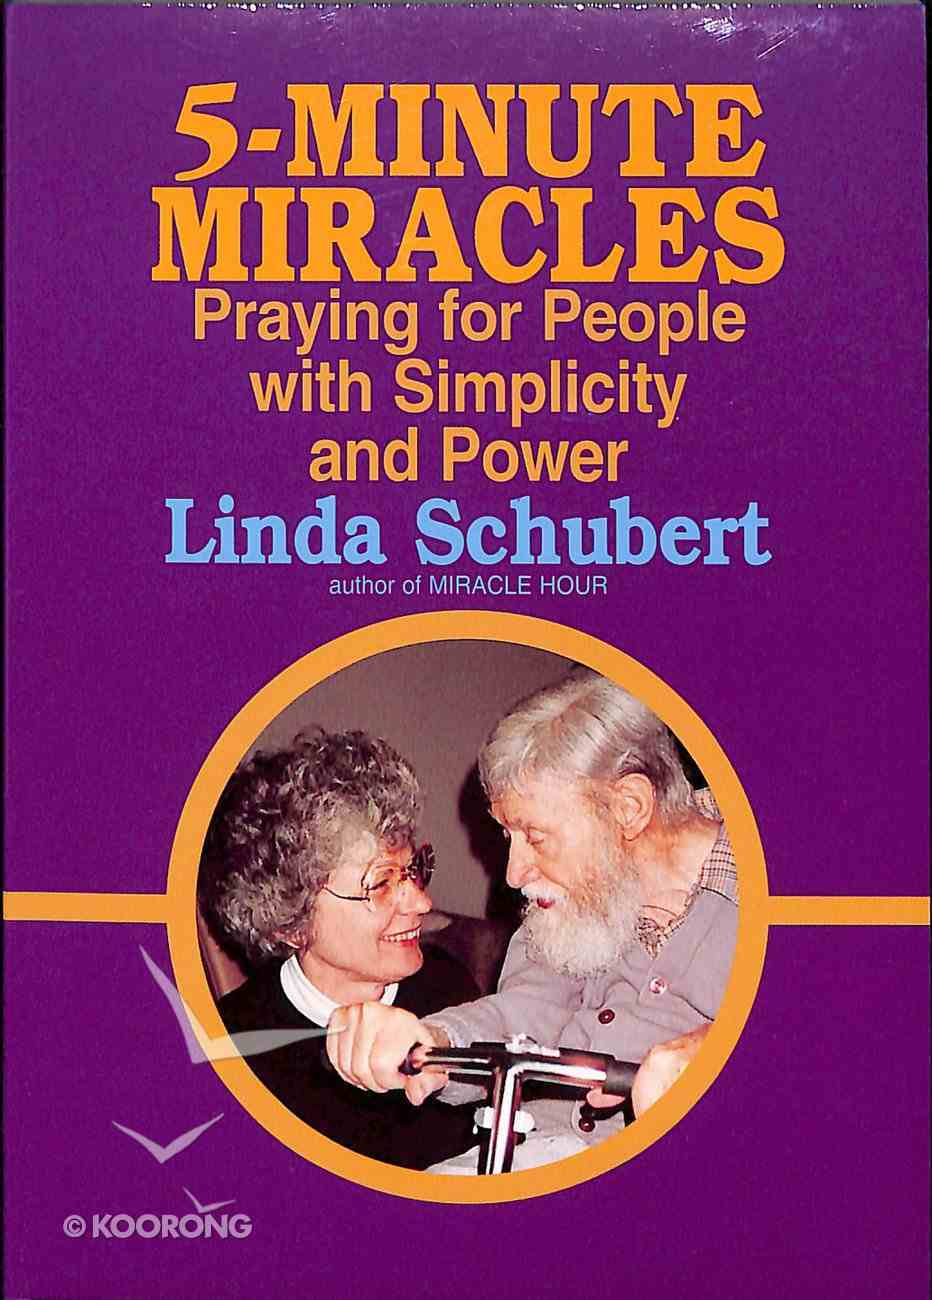 5-Minute Miracles Paperback